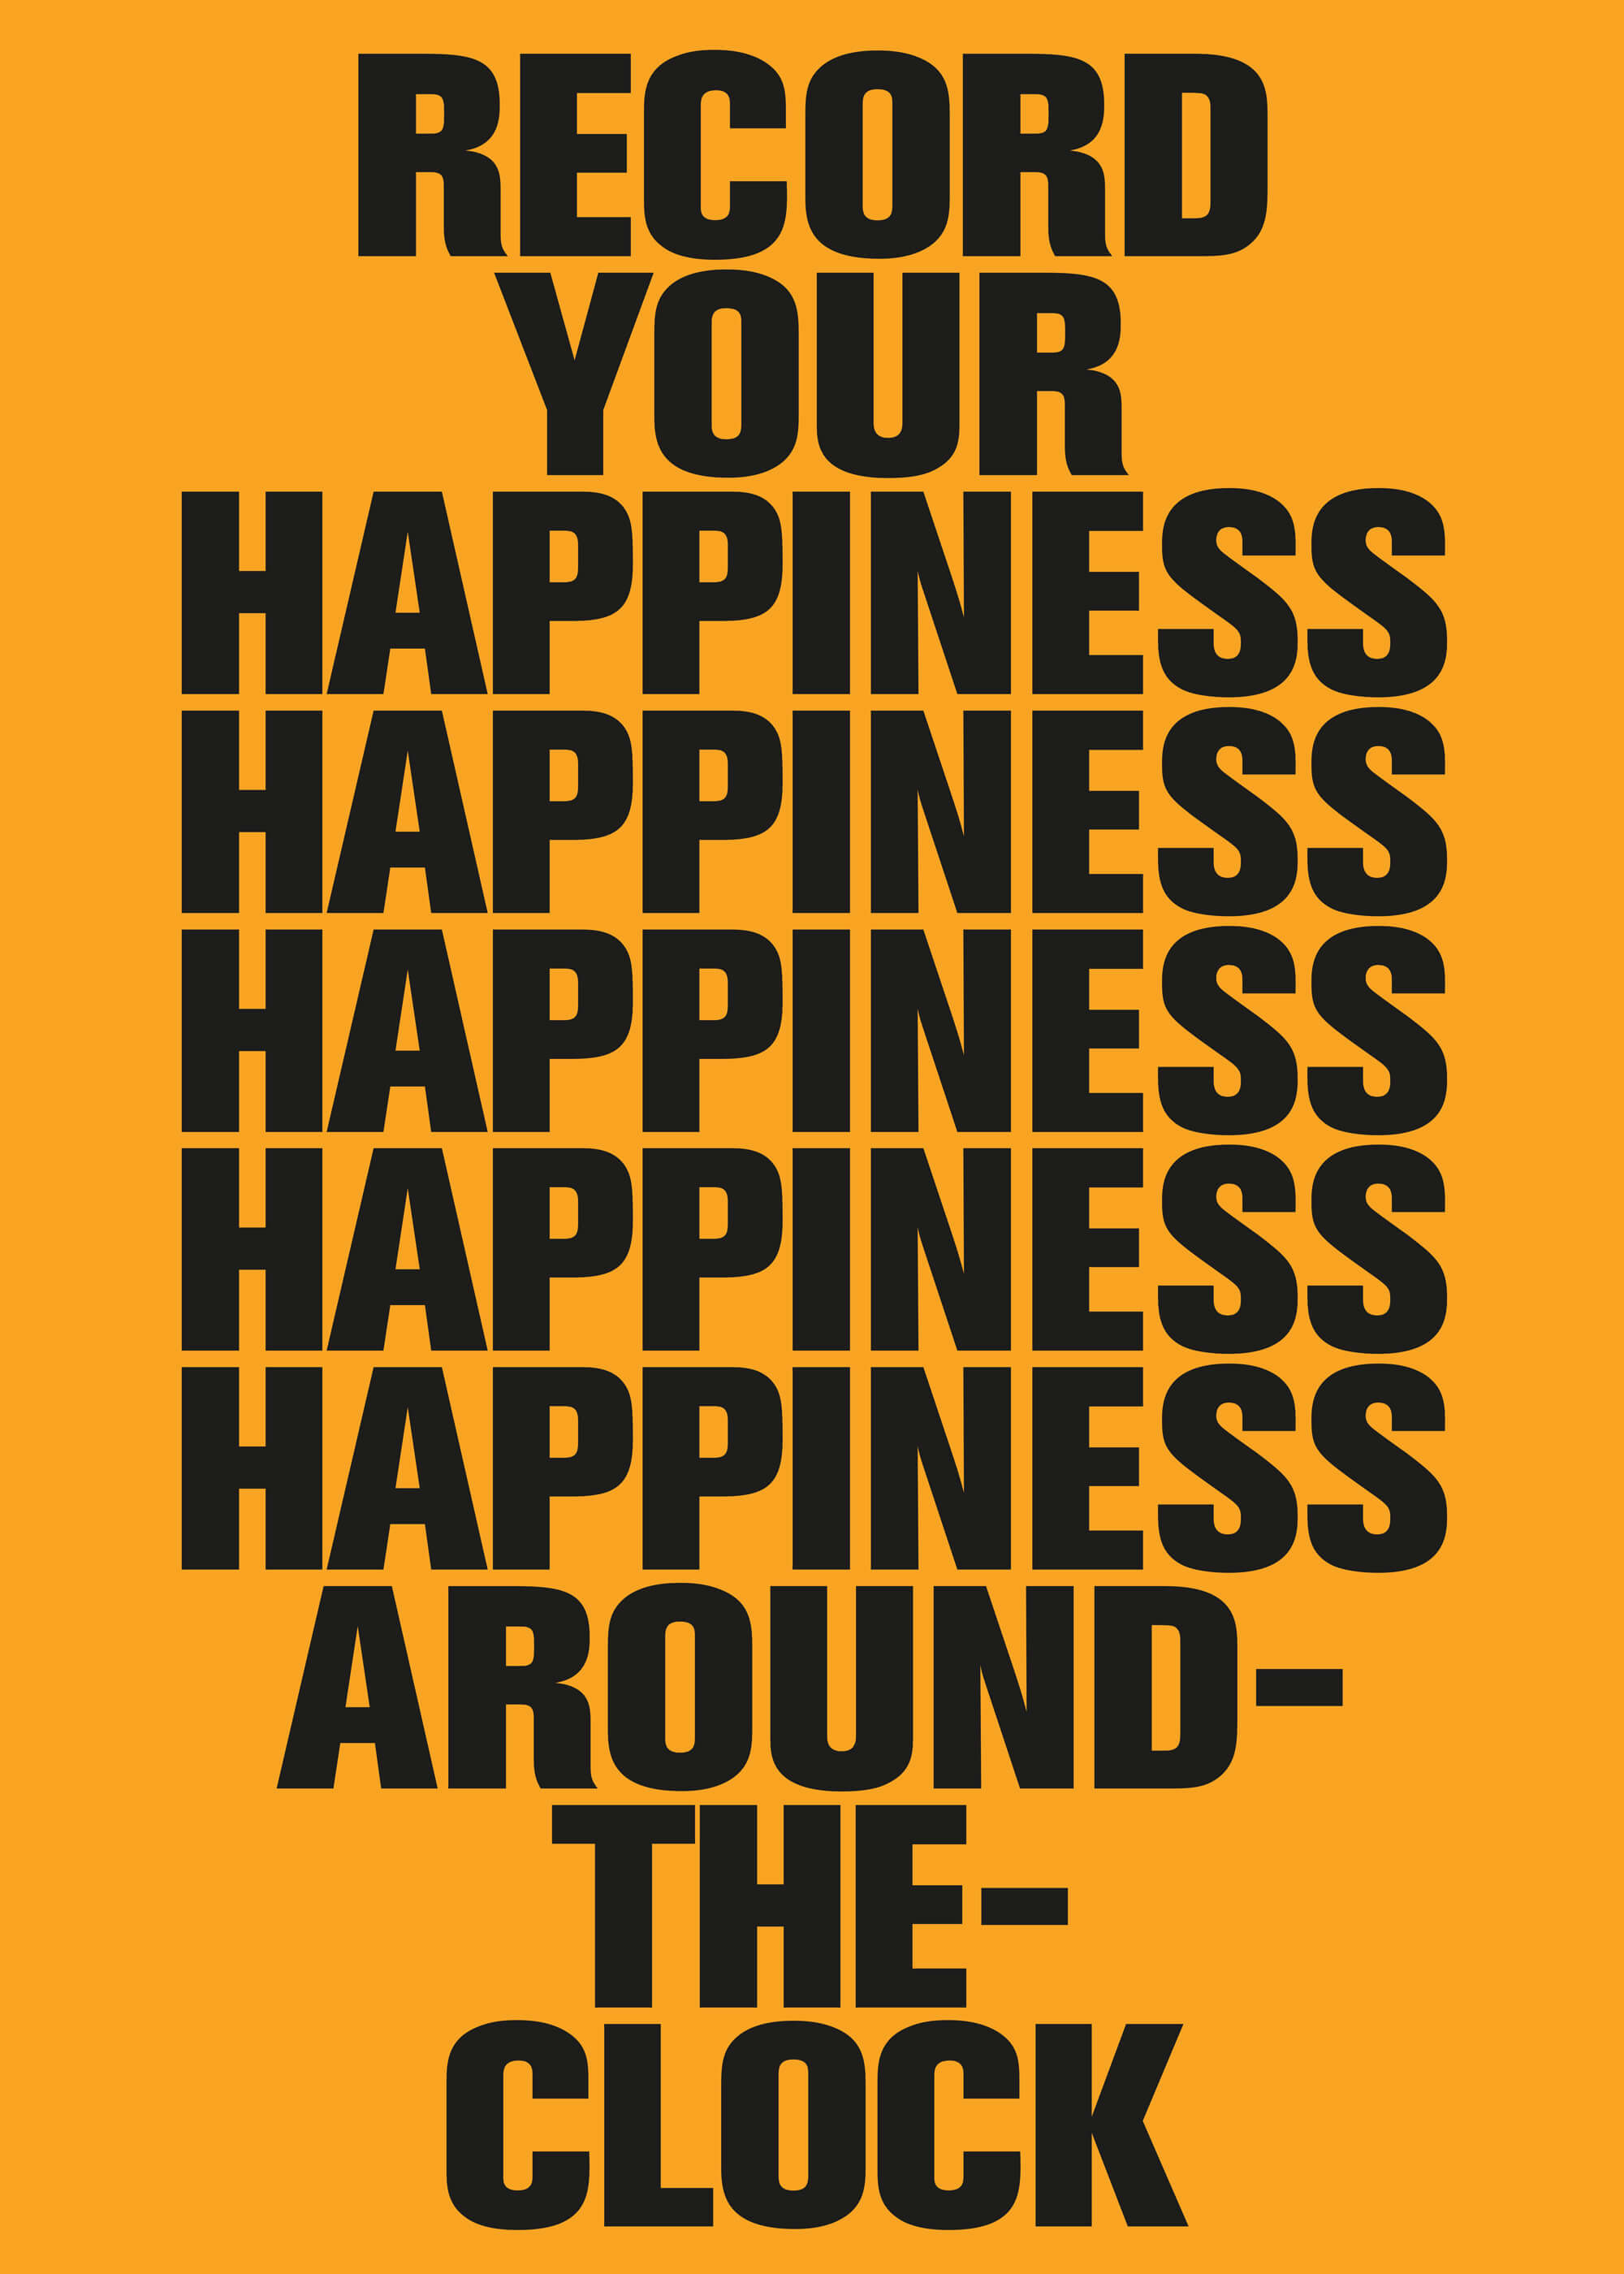 Daniel Angermann Poster Happiness